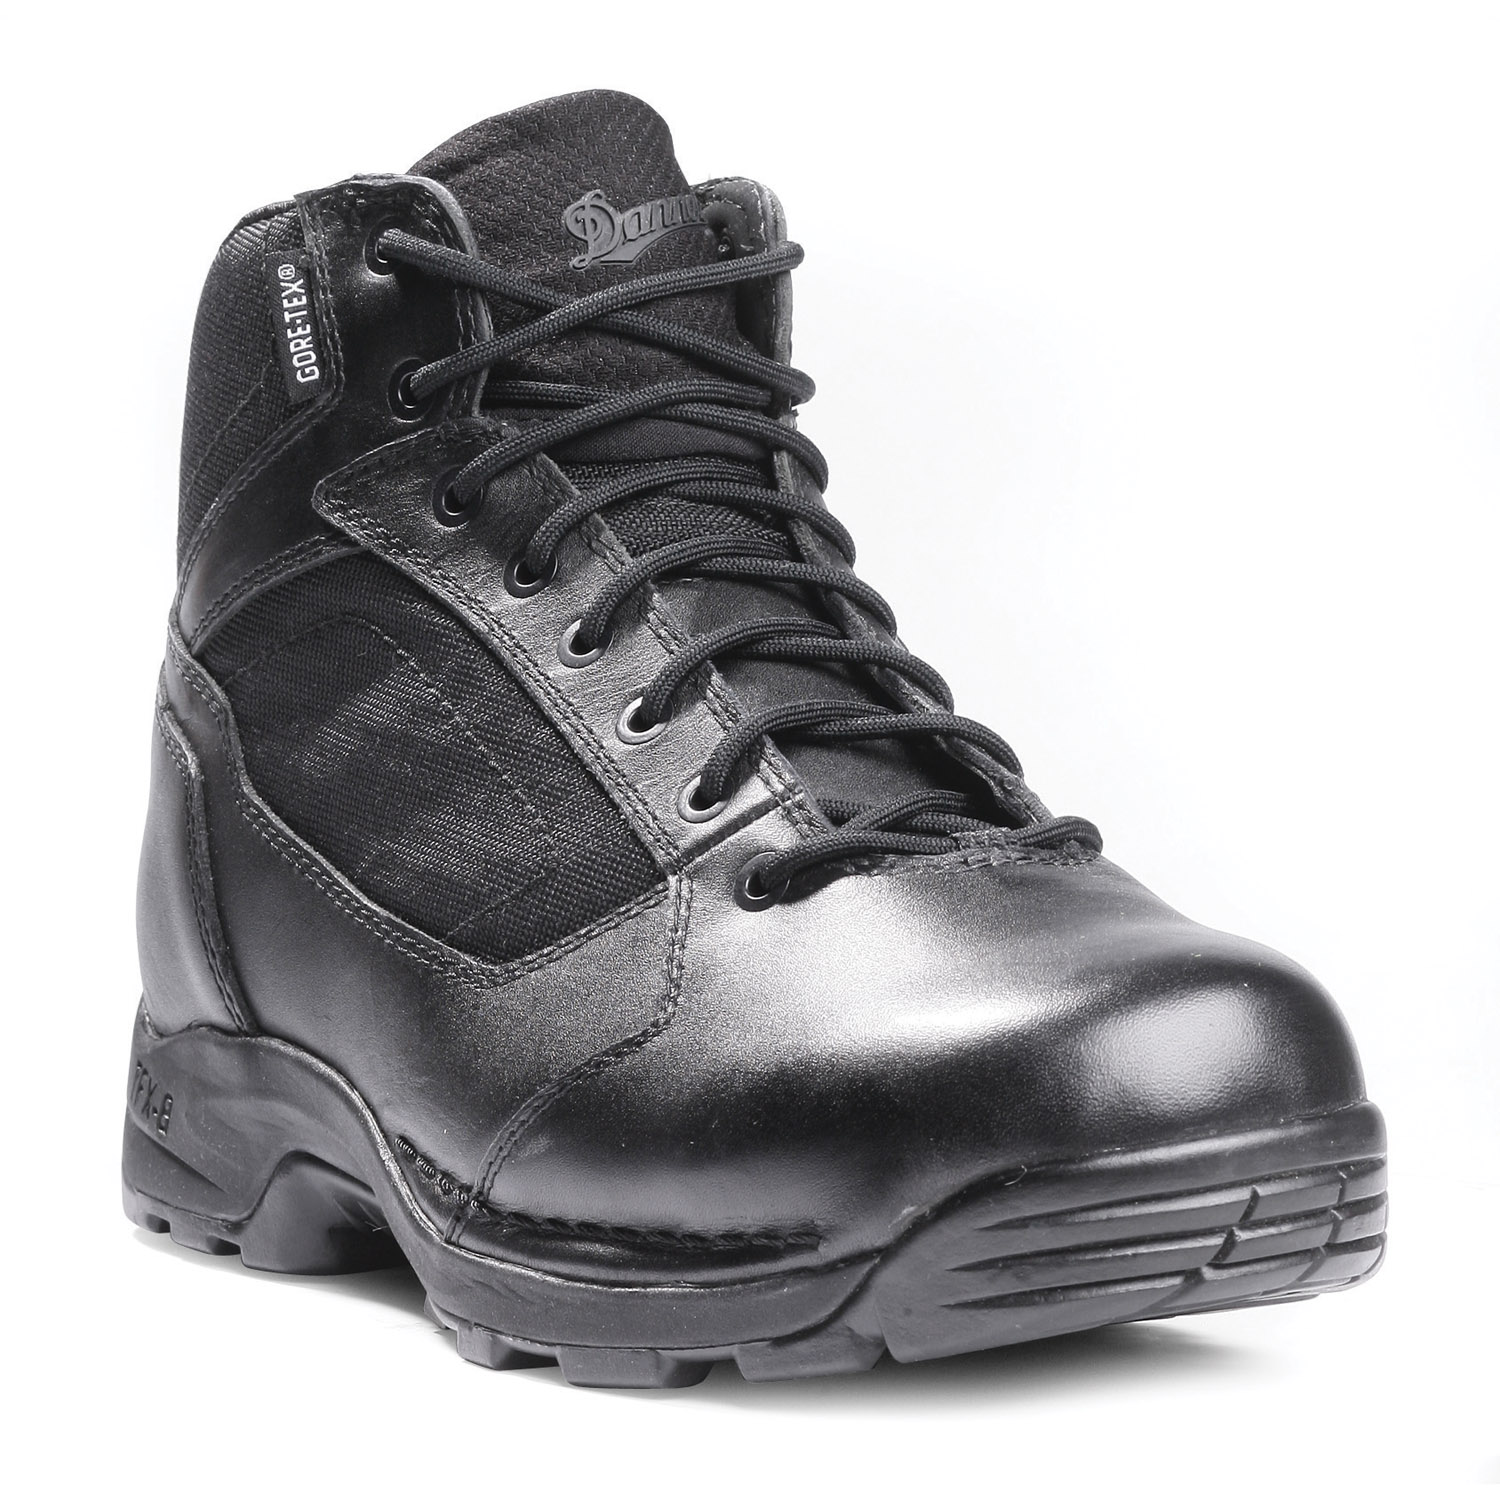 "Danner Women's 4.5"" Striker Torrent Waterproof Boot"